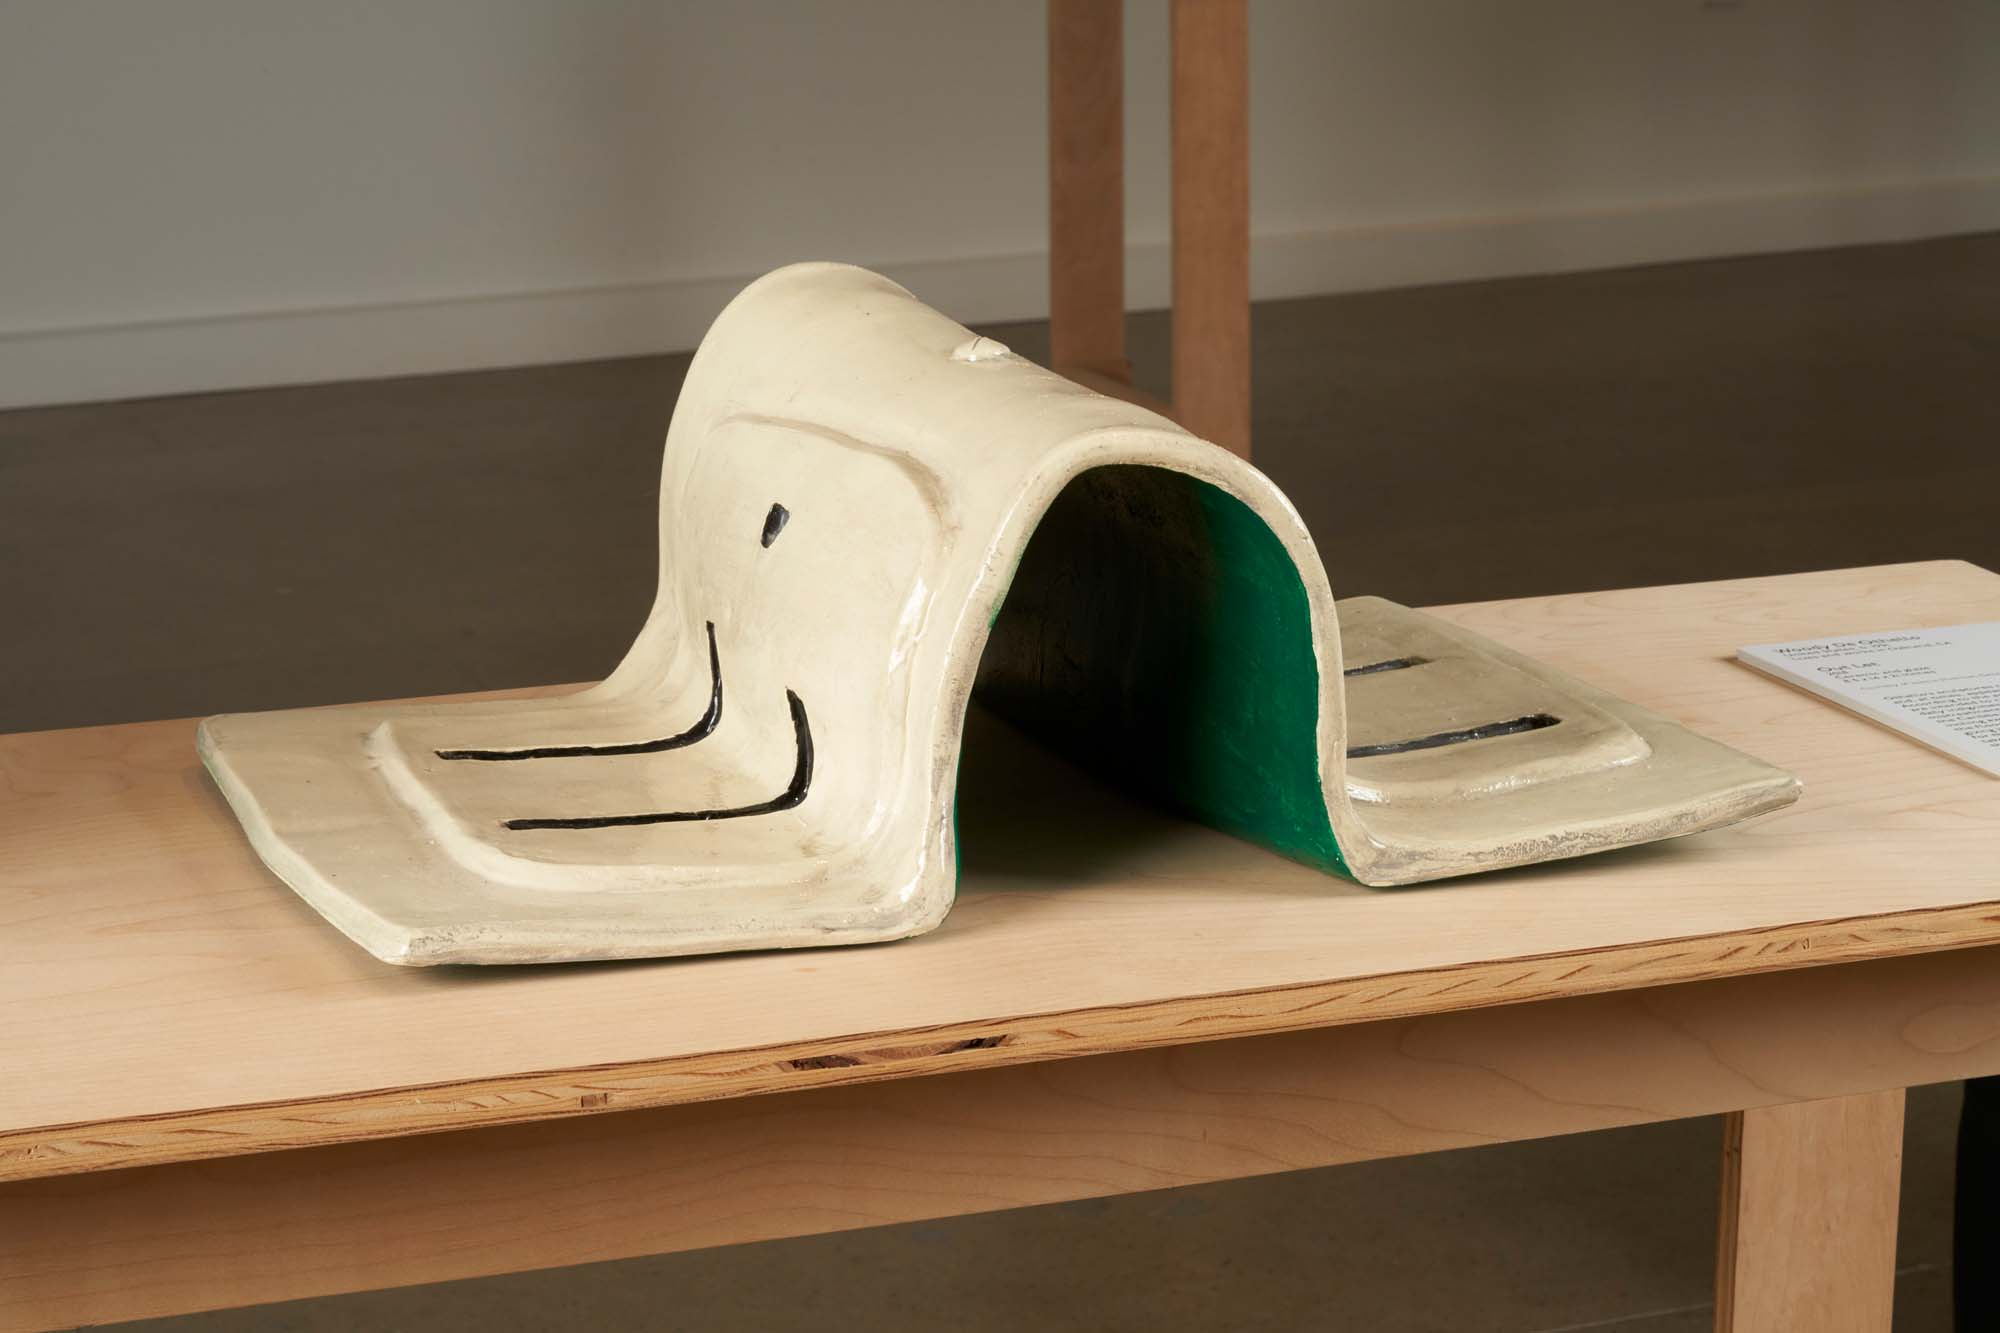 """Image of """"Out Let"""" by Woody De Othello, a ceramic sculpture of an electrical outlet."""